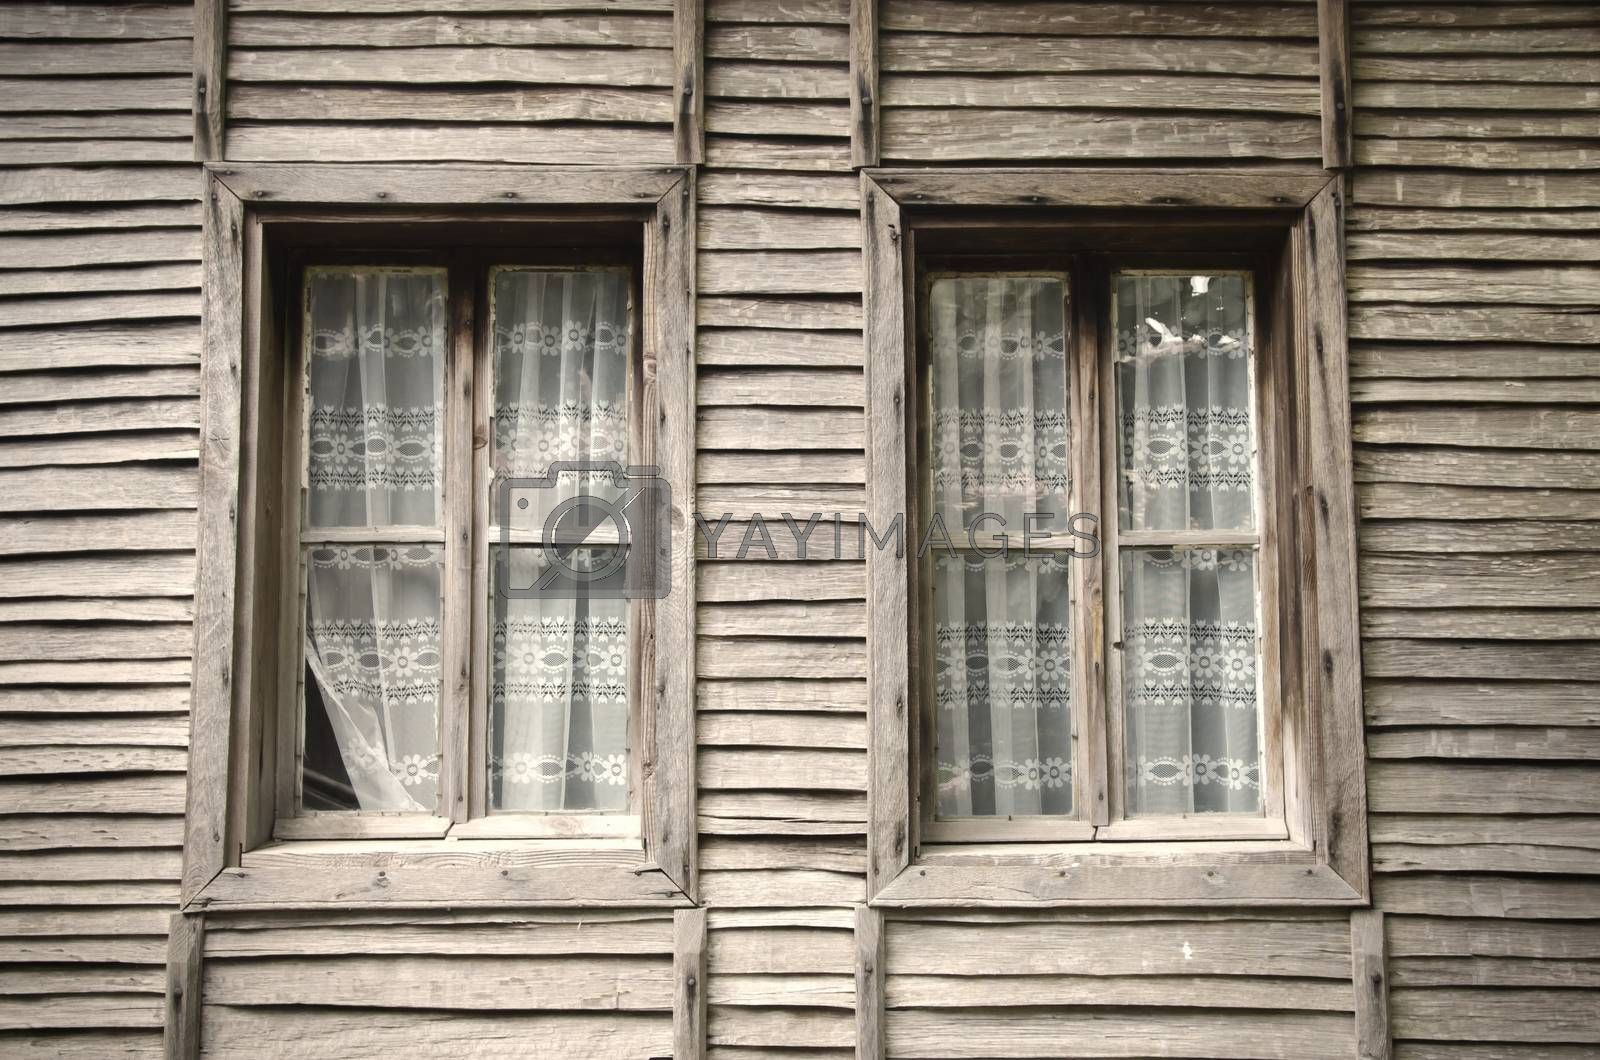 Two Old Windows at Wooden Vintage Wall